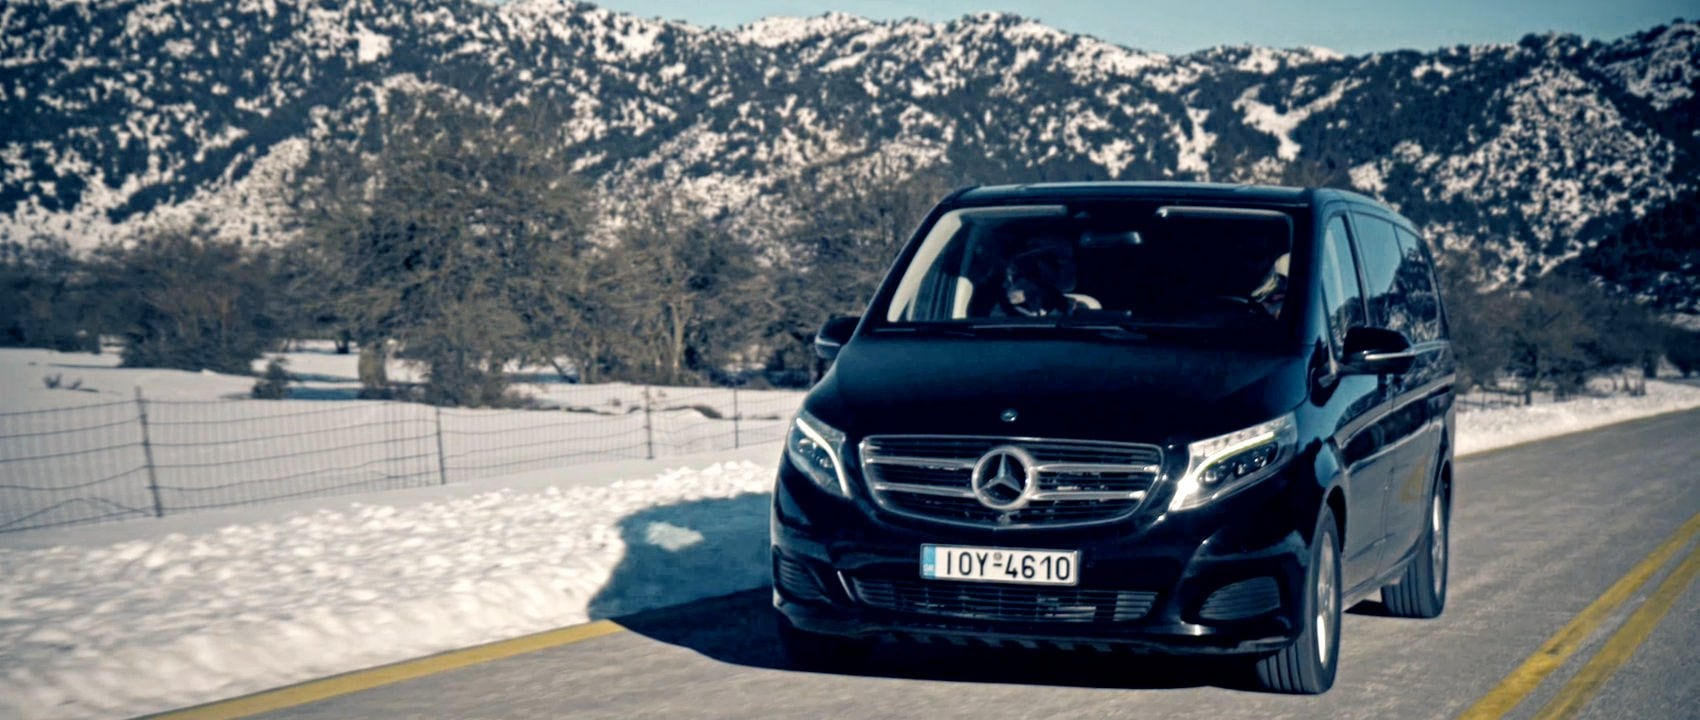 In the winter of 2017, five women traveled to the Greek Island of Crete to do a ski tour in the White Mountains. The women are sitting around their car – a Mercedes-Benz V-Class.